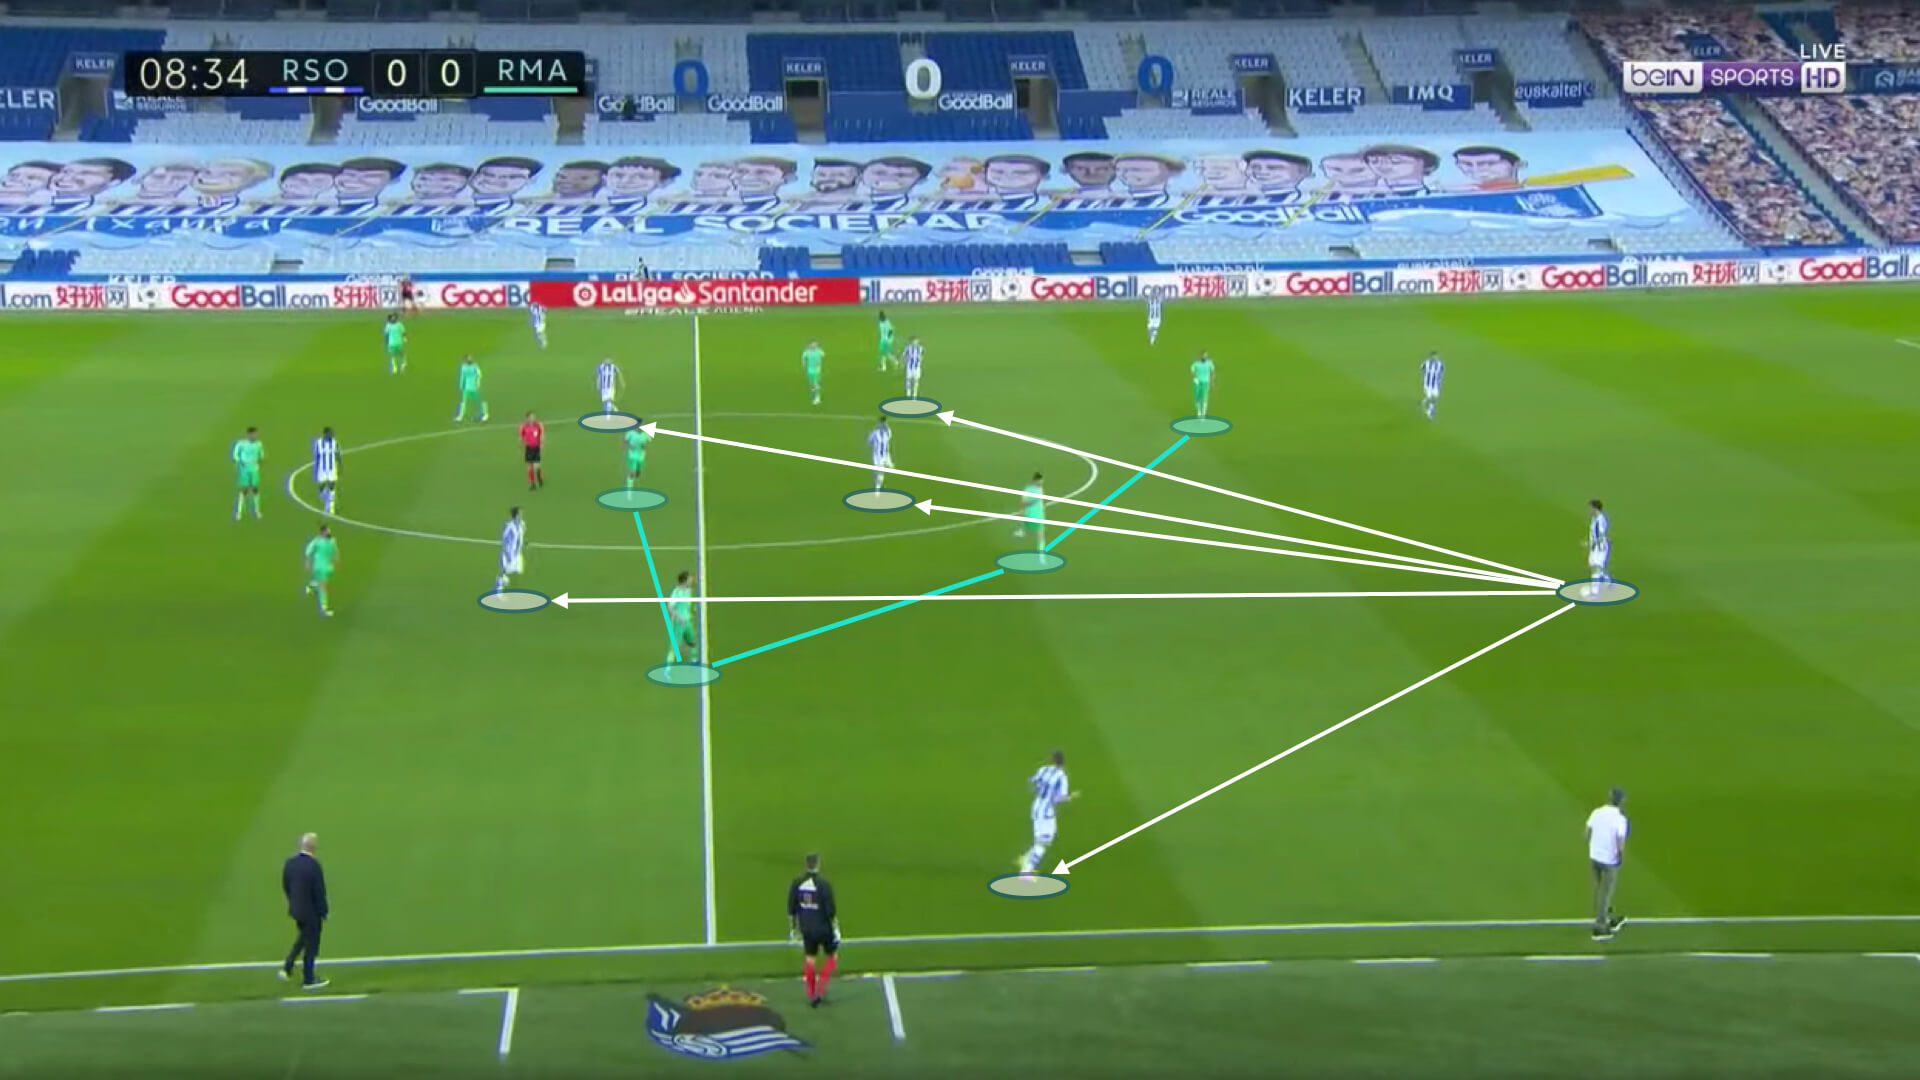 La Liga 2019/20: Real Sociedad vs Real Madrid - tactical analysis tactics